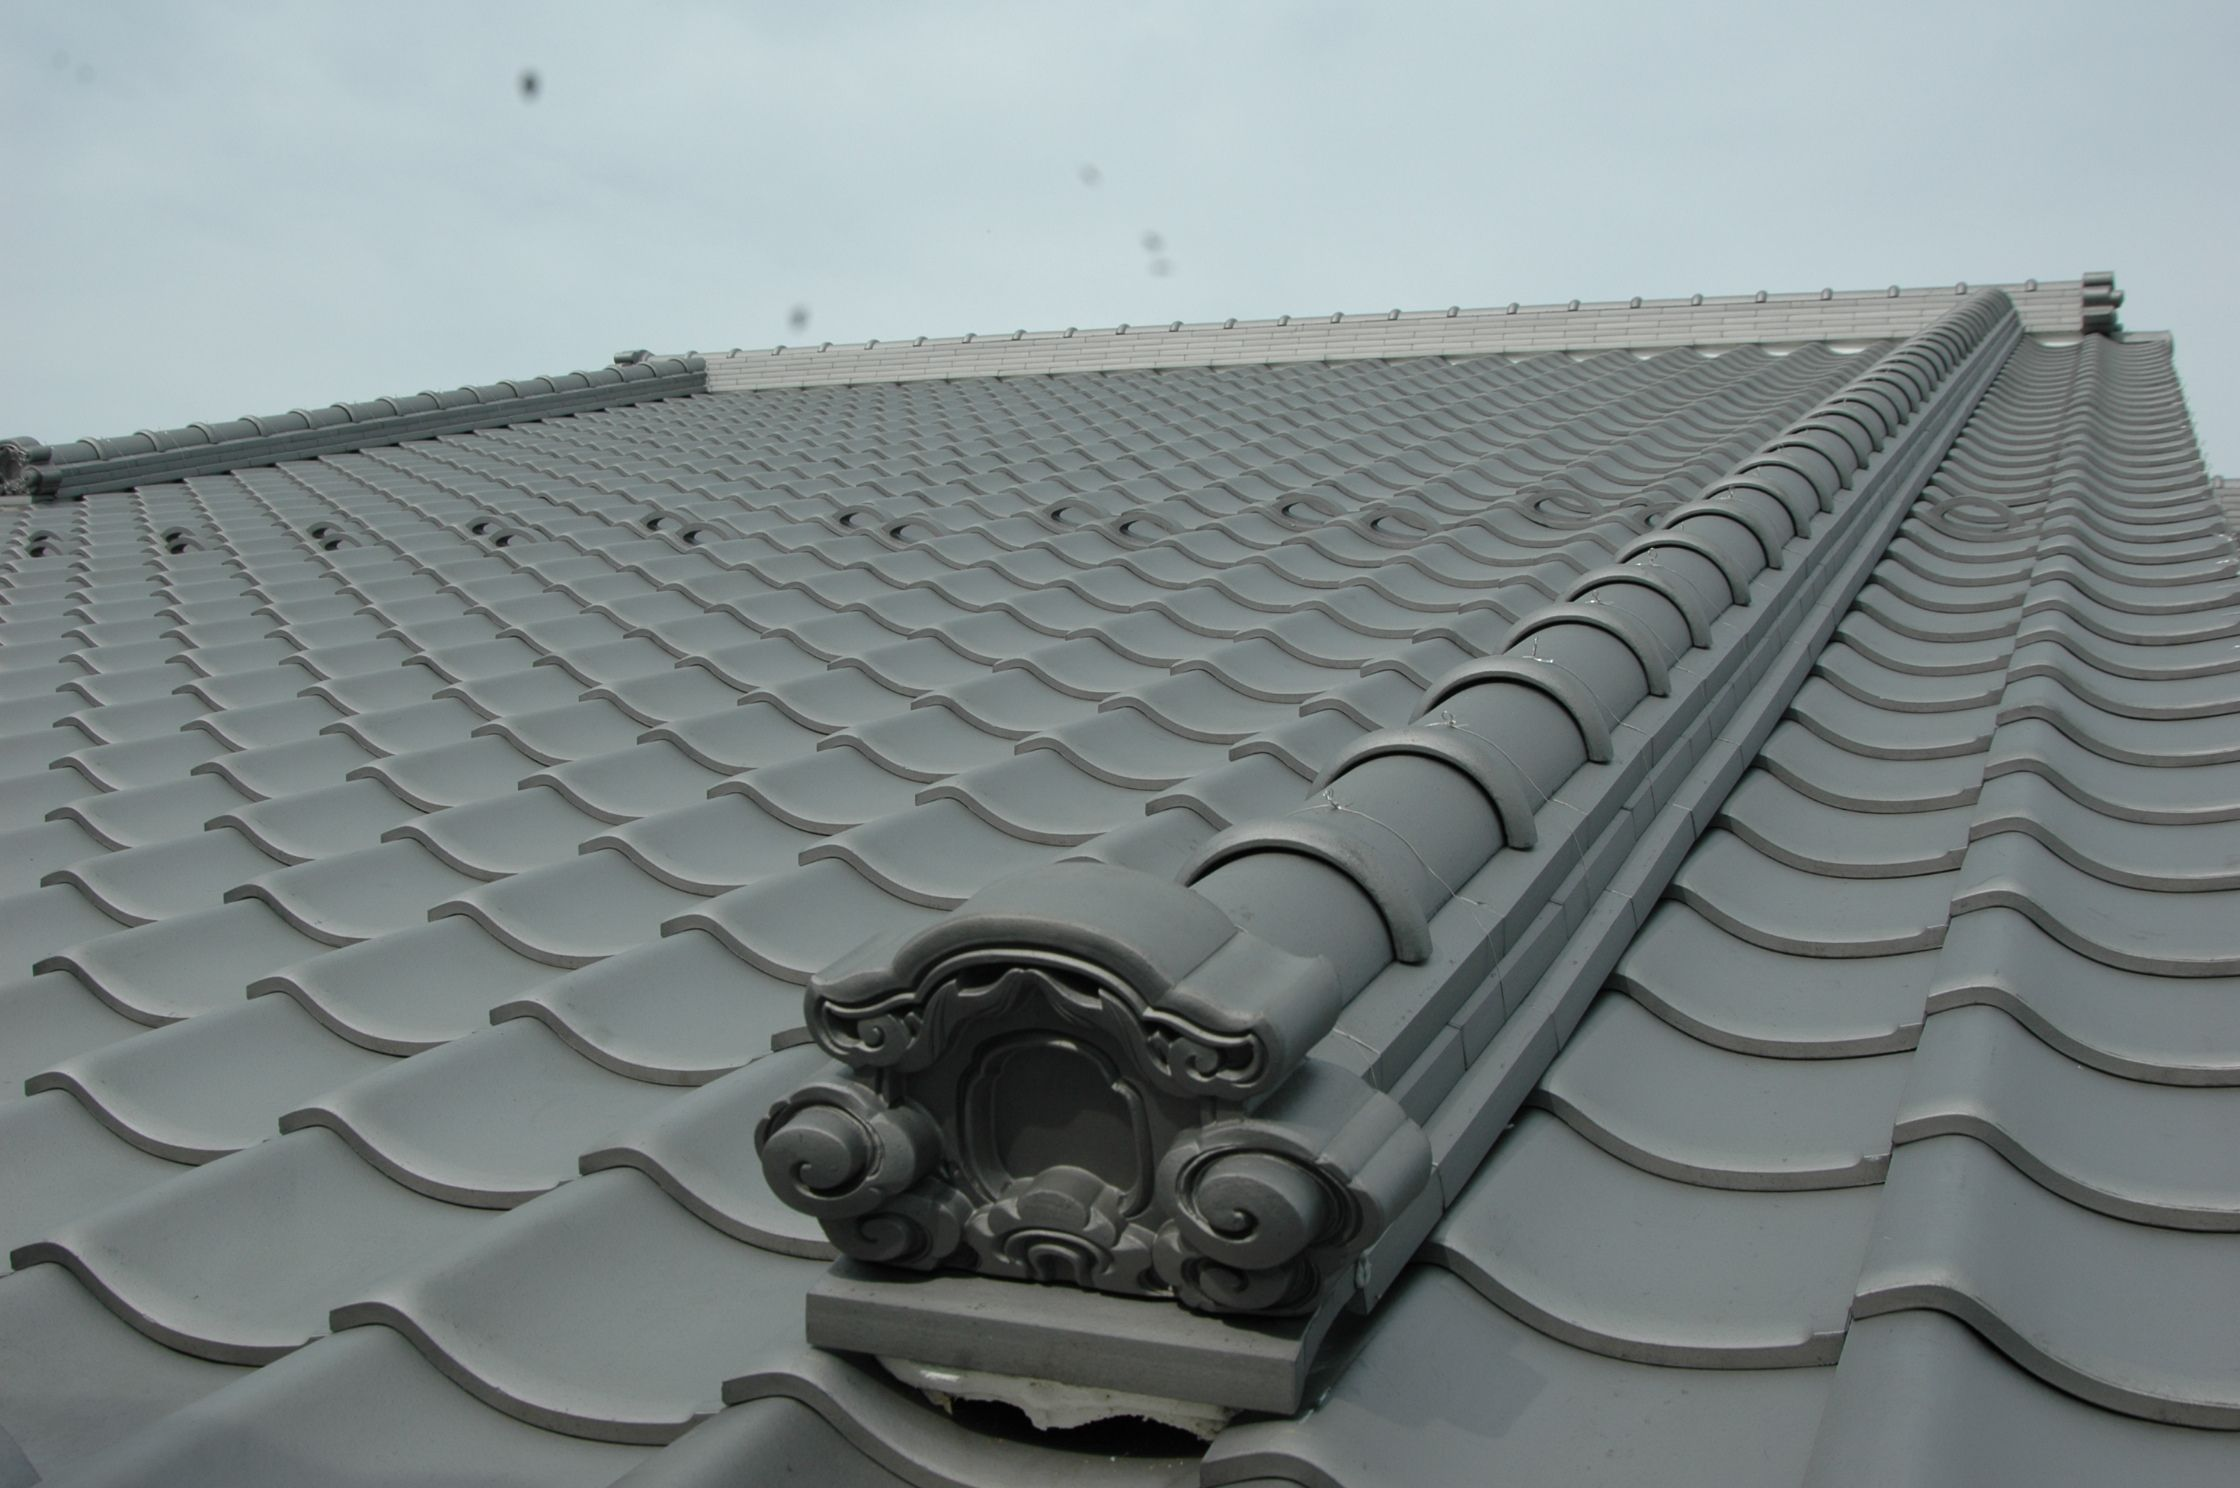 Japanese roof tiles google search neo tokyo justice defence ceramic roof tiles dailygadgetfo Choice Image